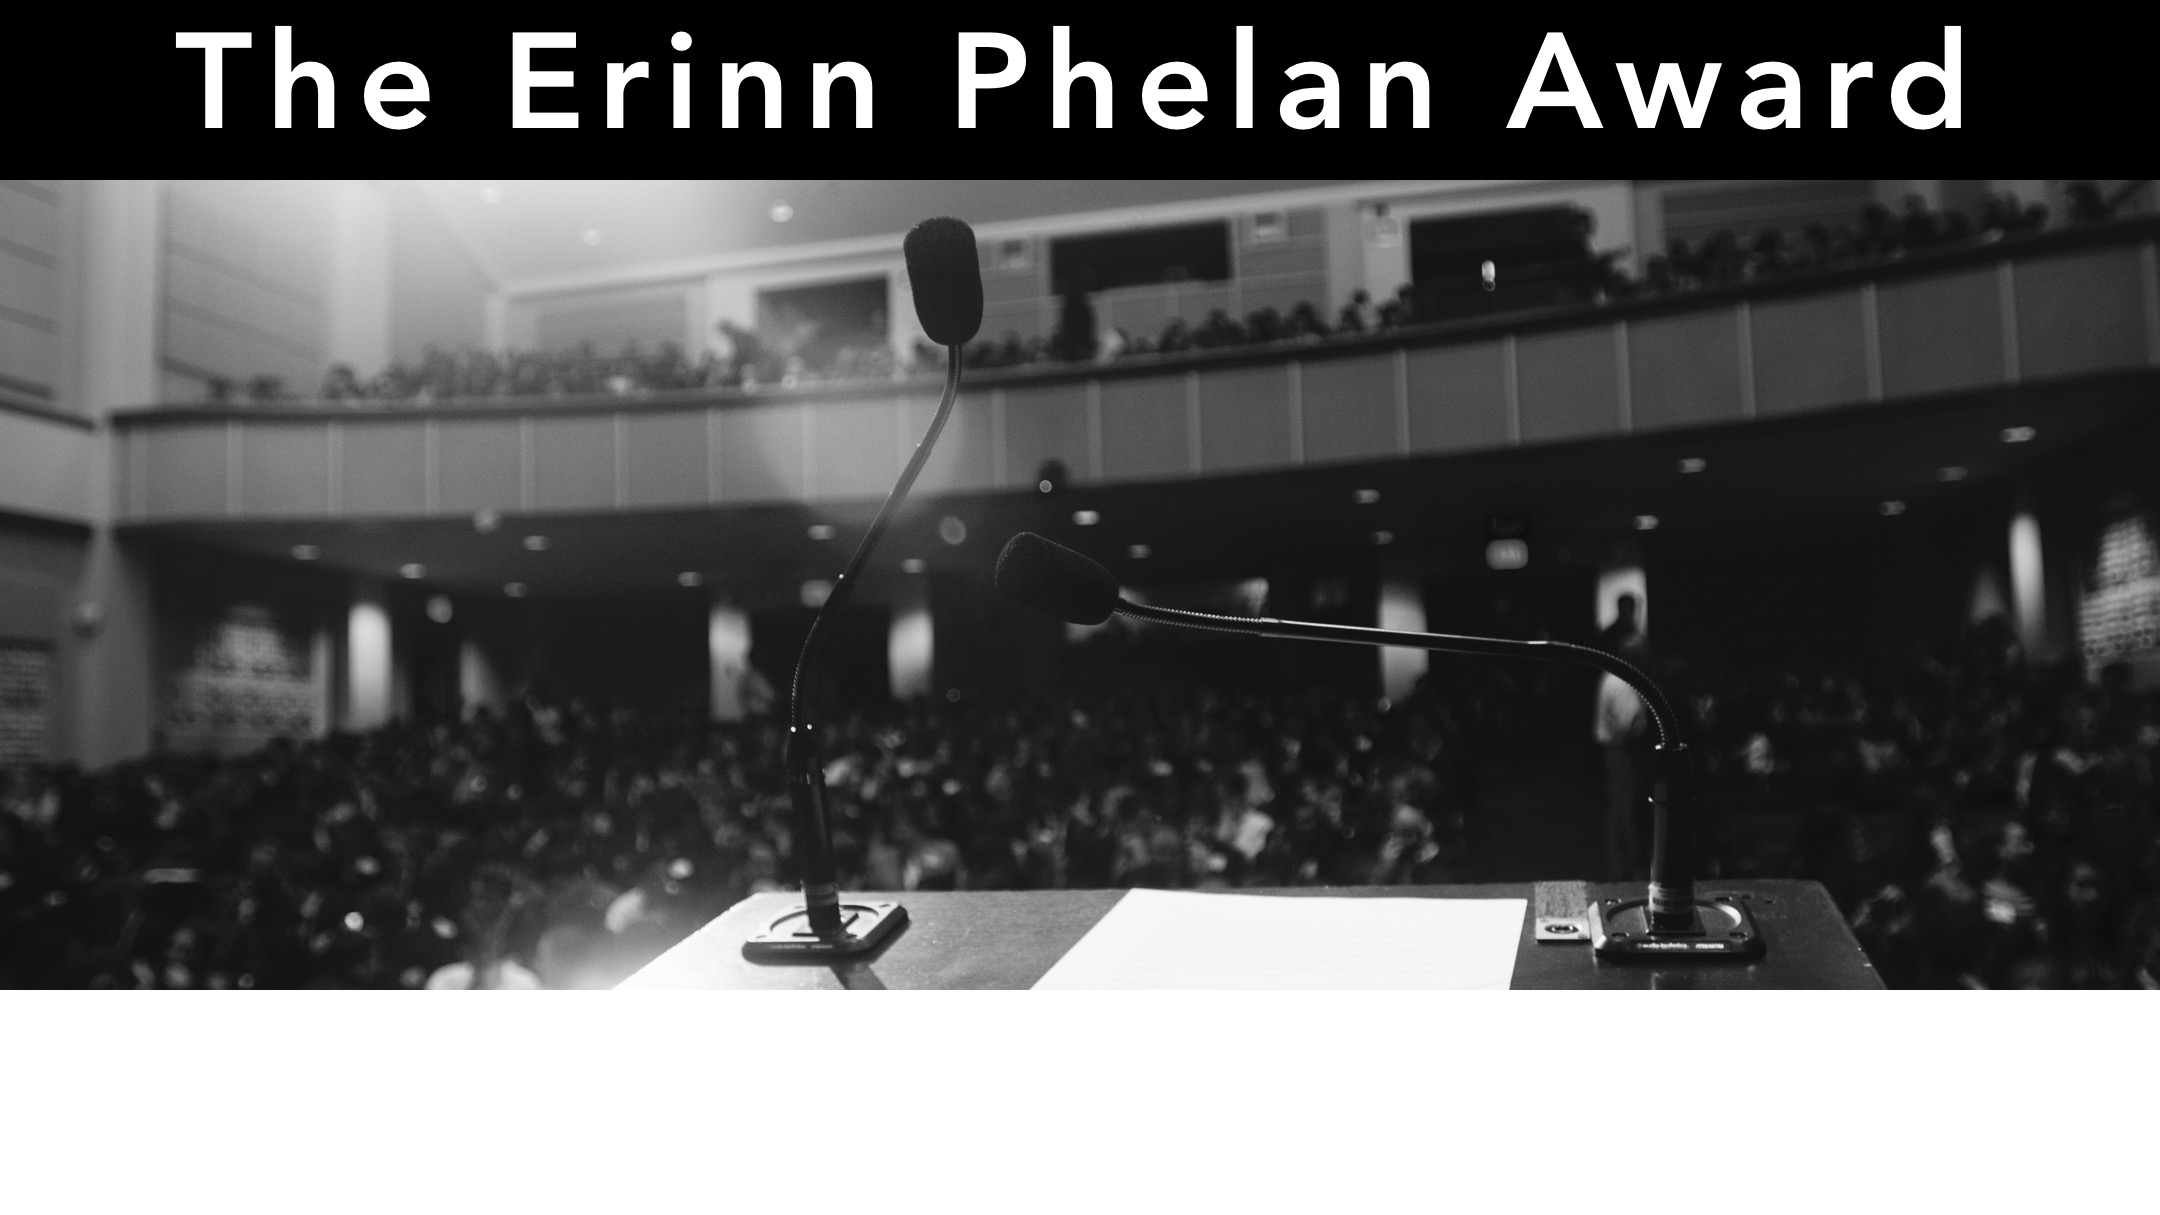 The Erinn Phelan Award